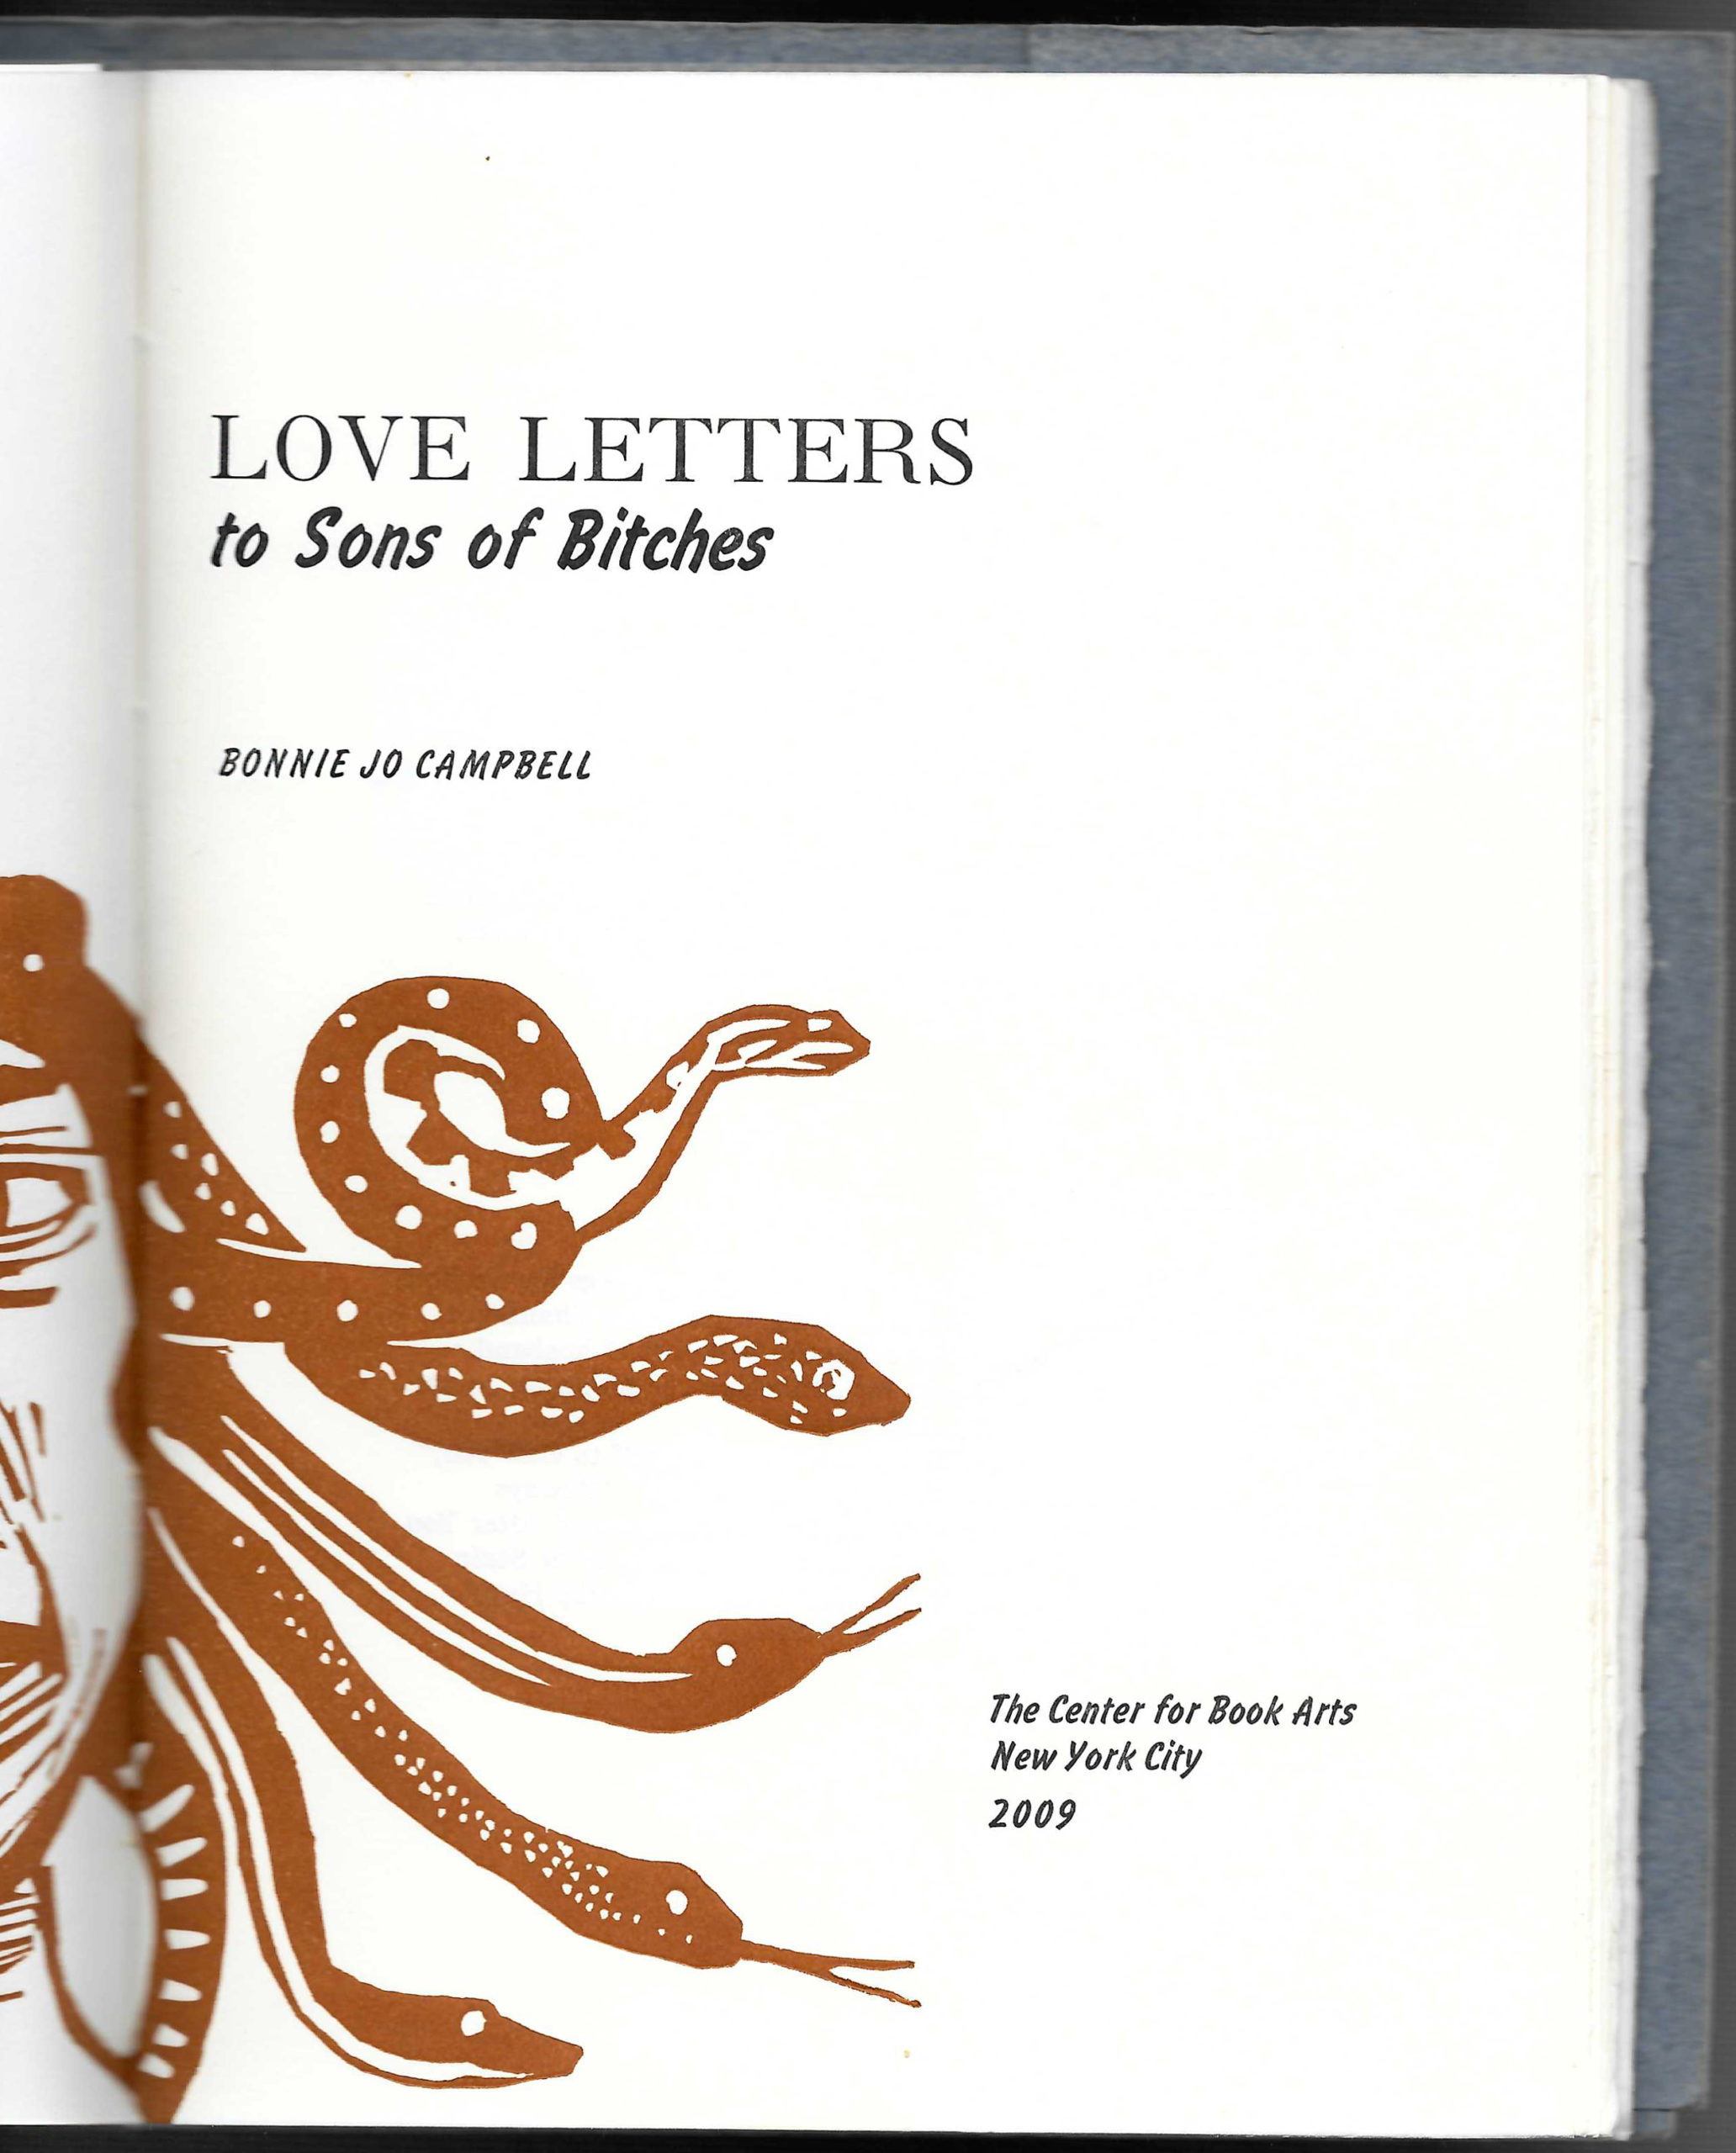 red Medusa head on title page of book